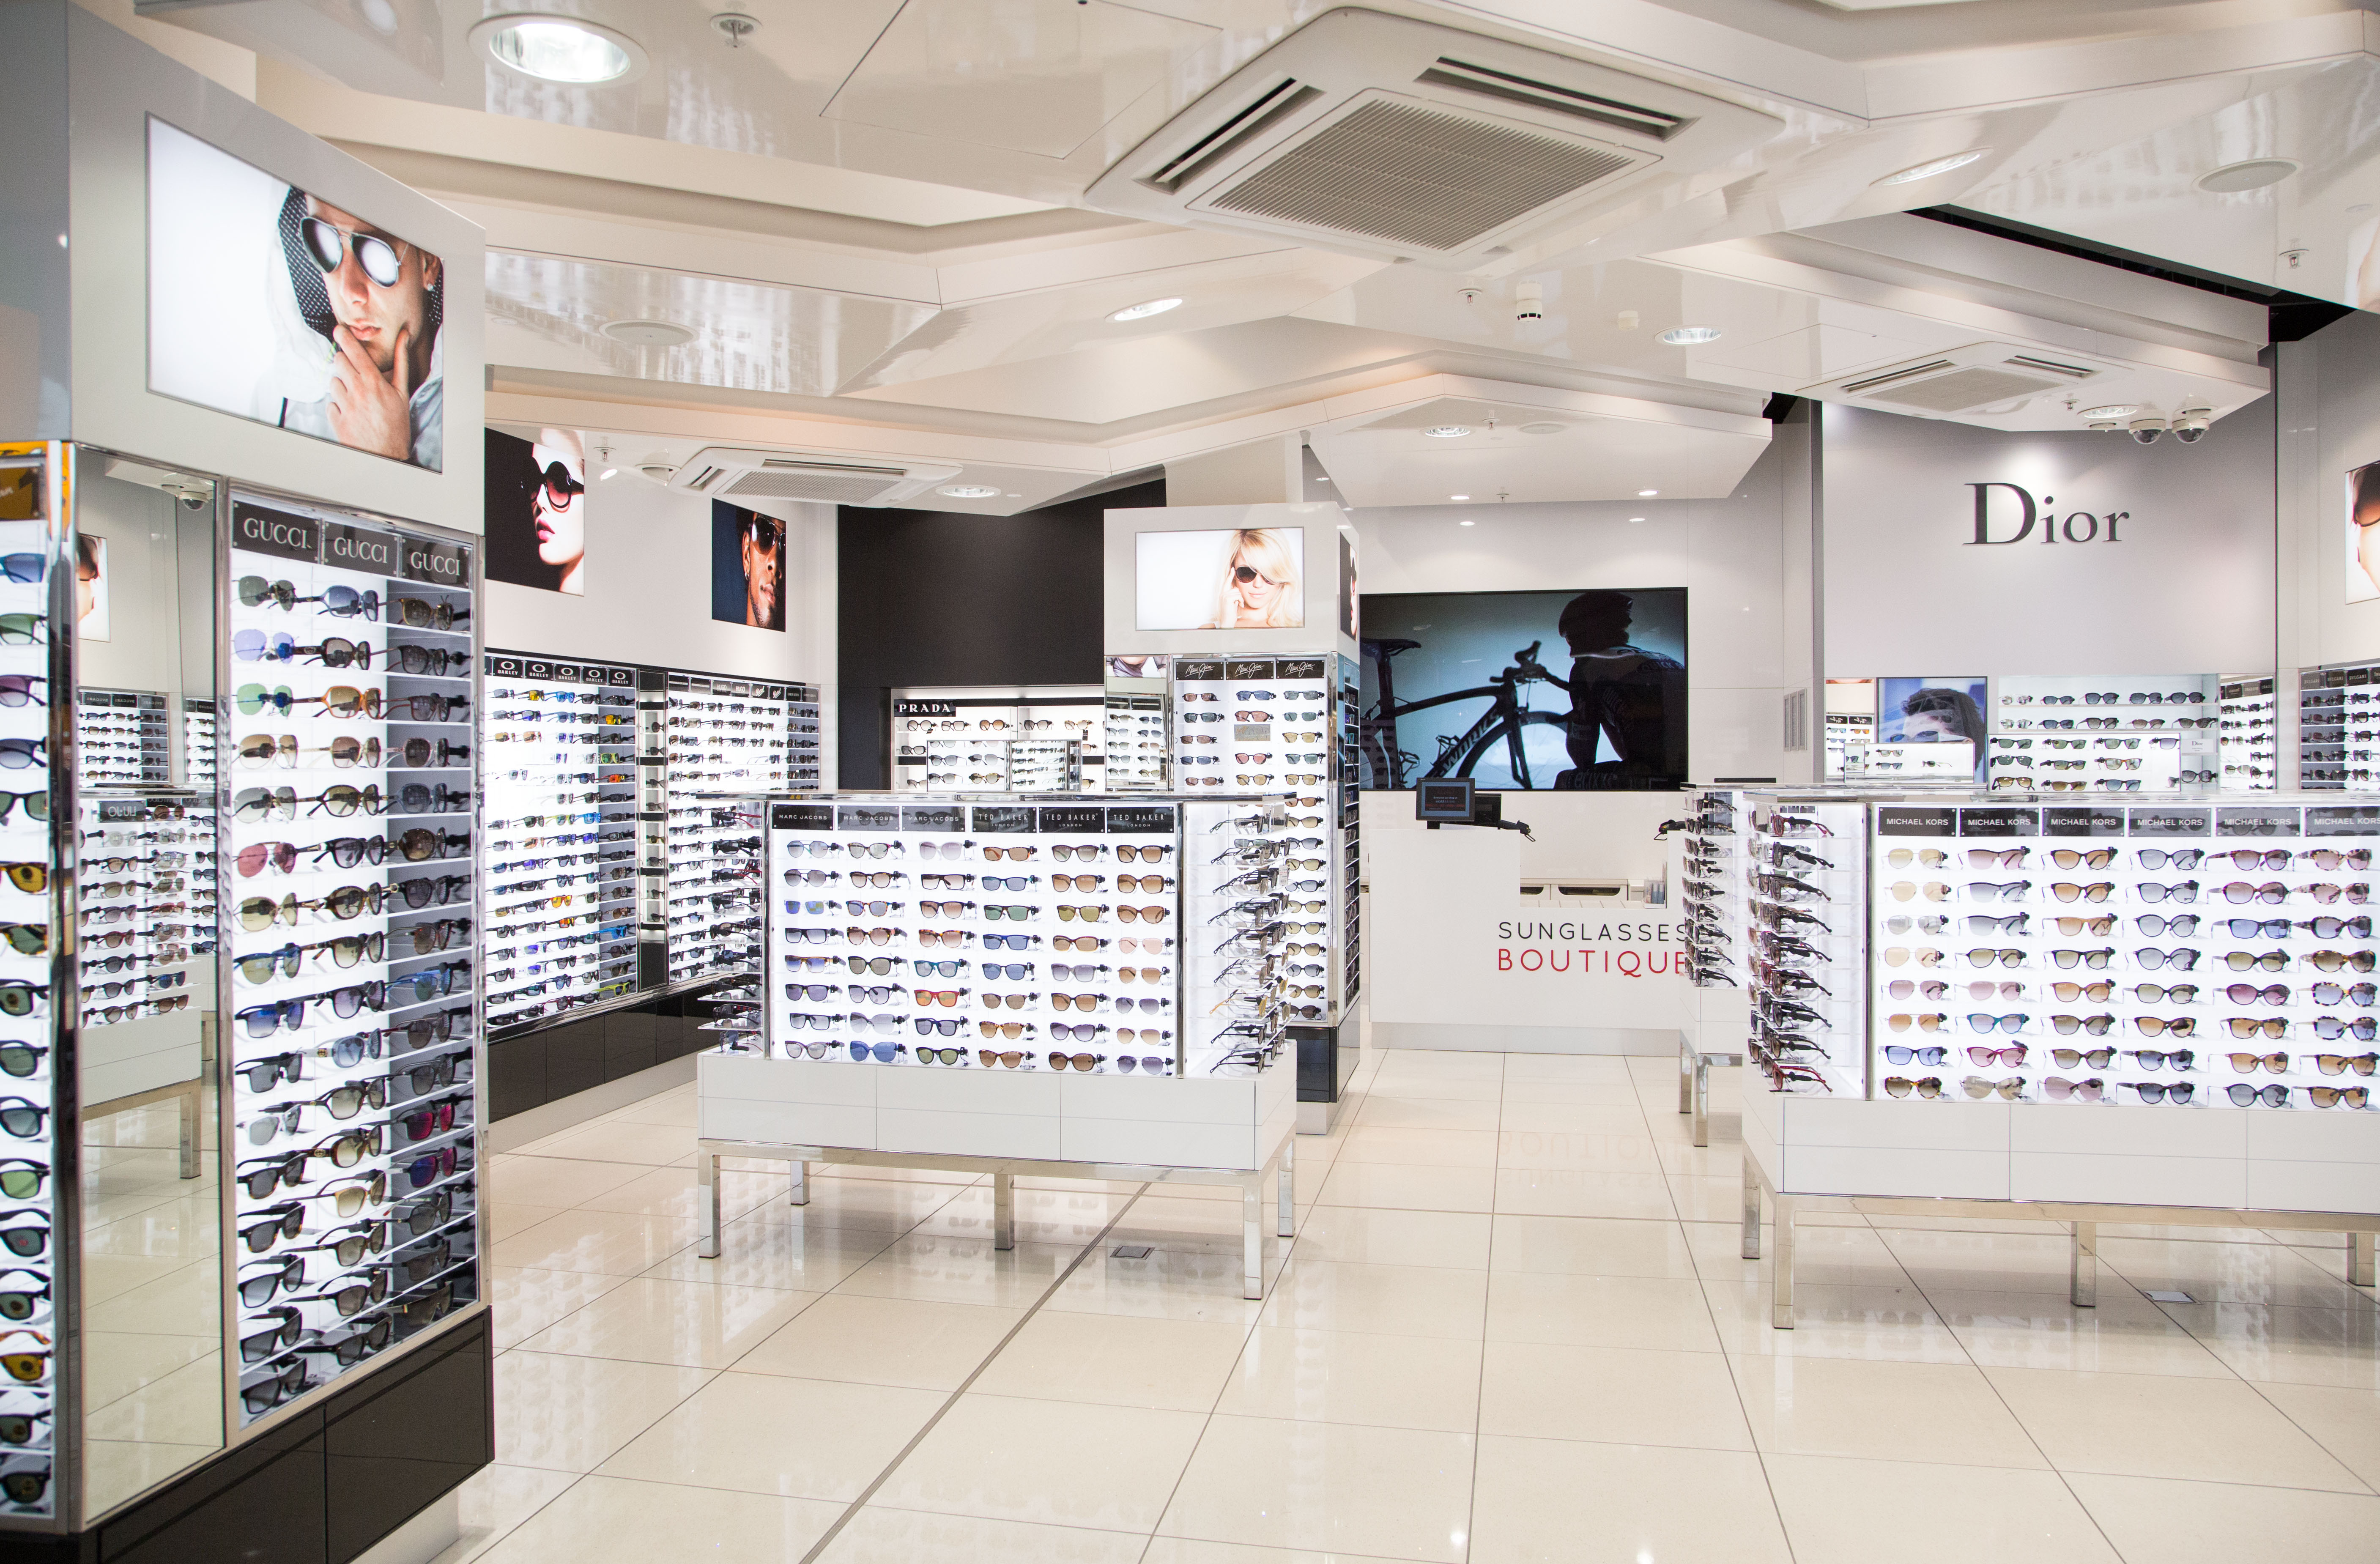 Wdfg opens first sunglasses boutique at heathrow t3 for Optical store designs interior